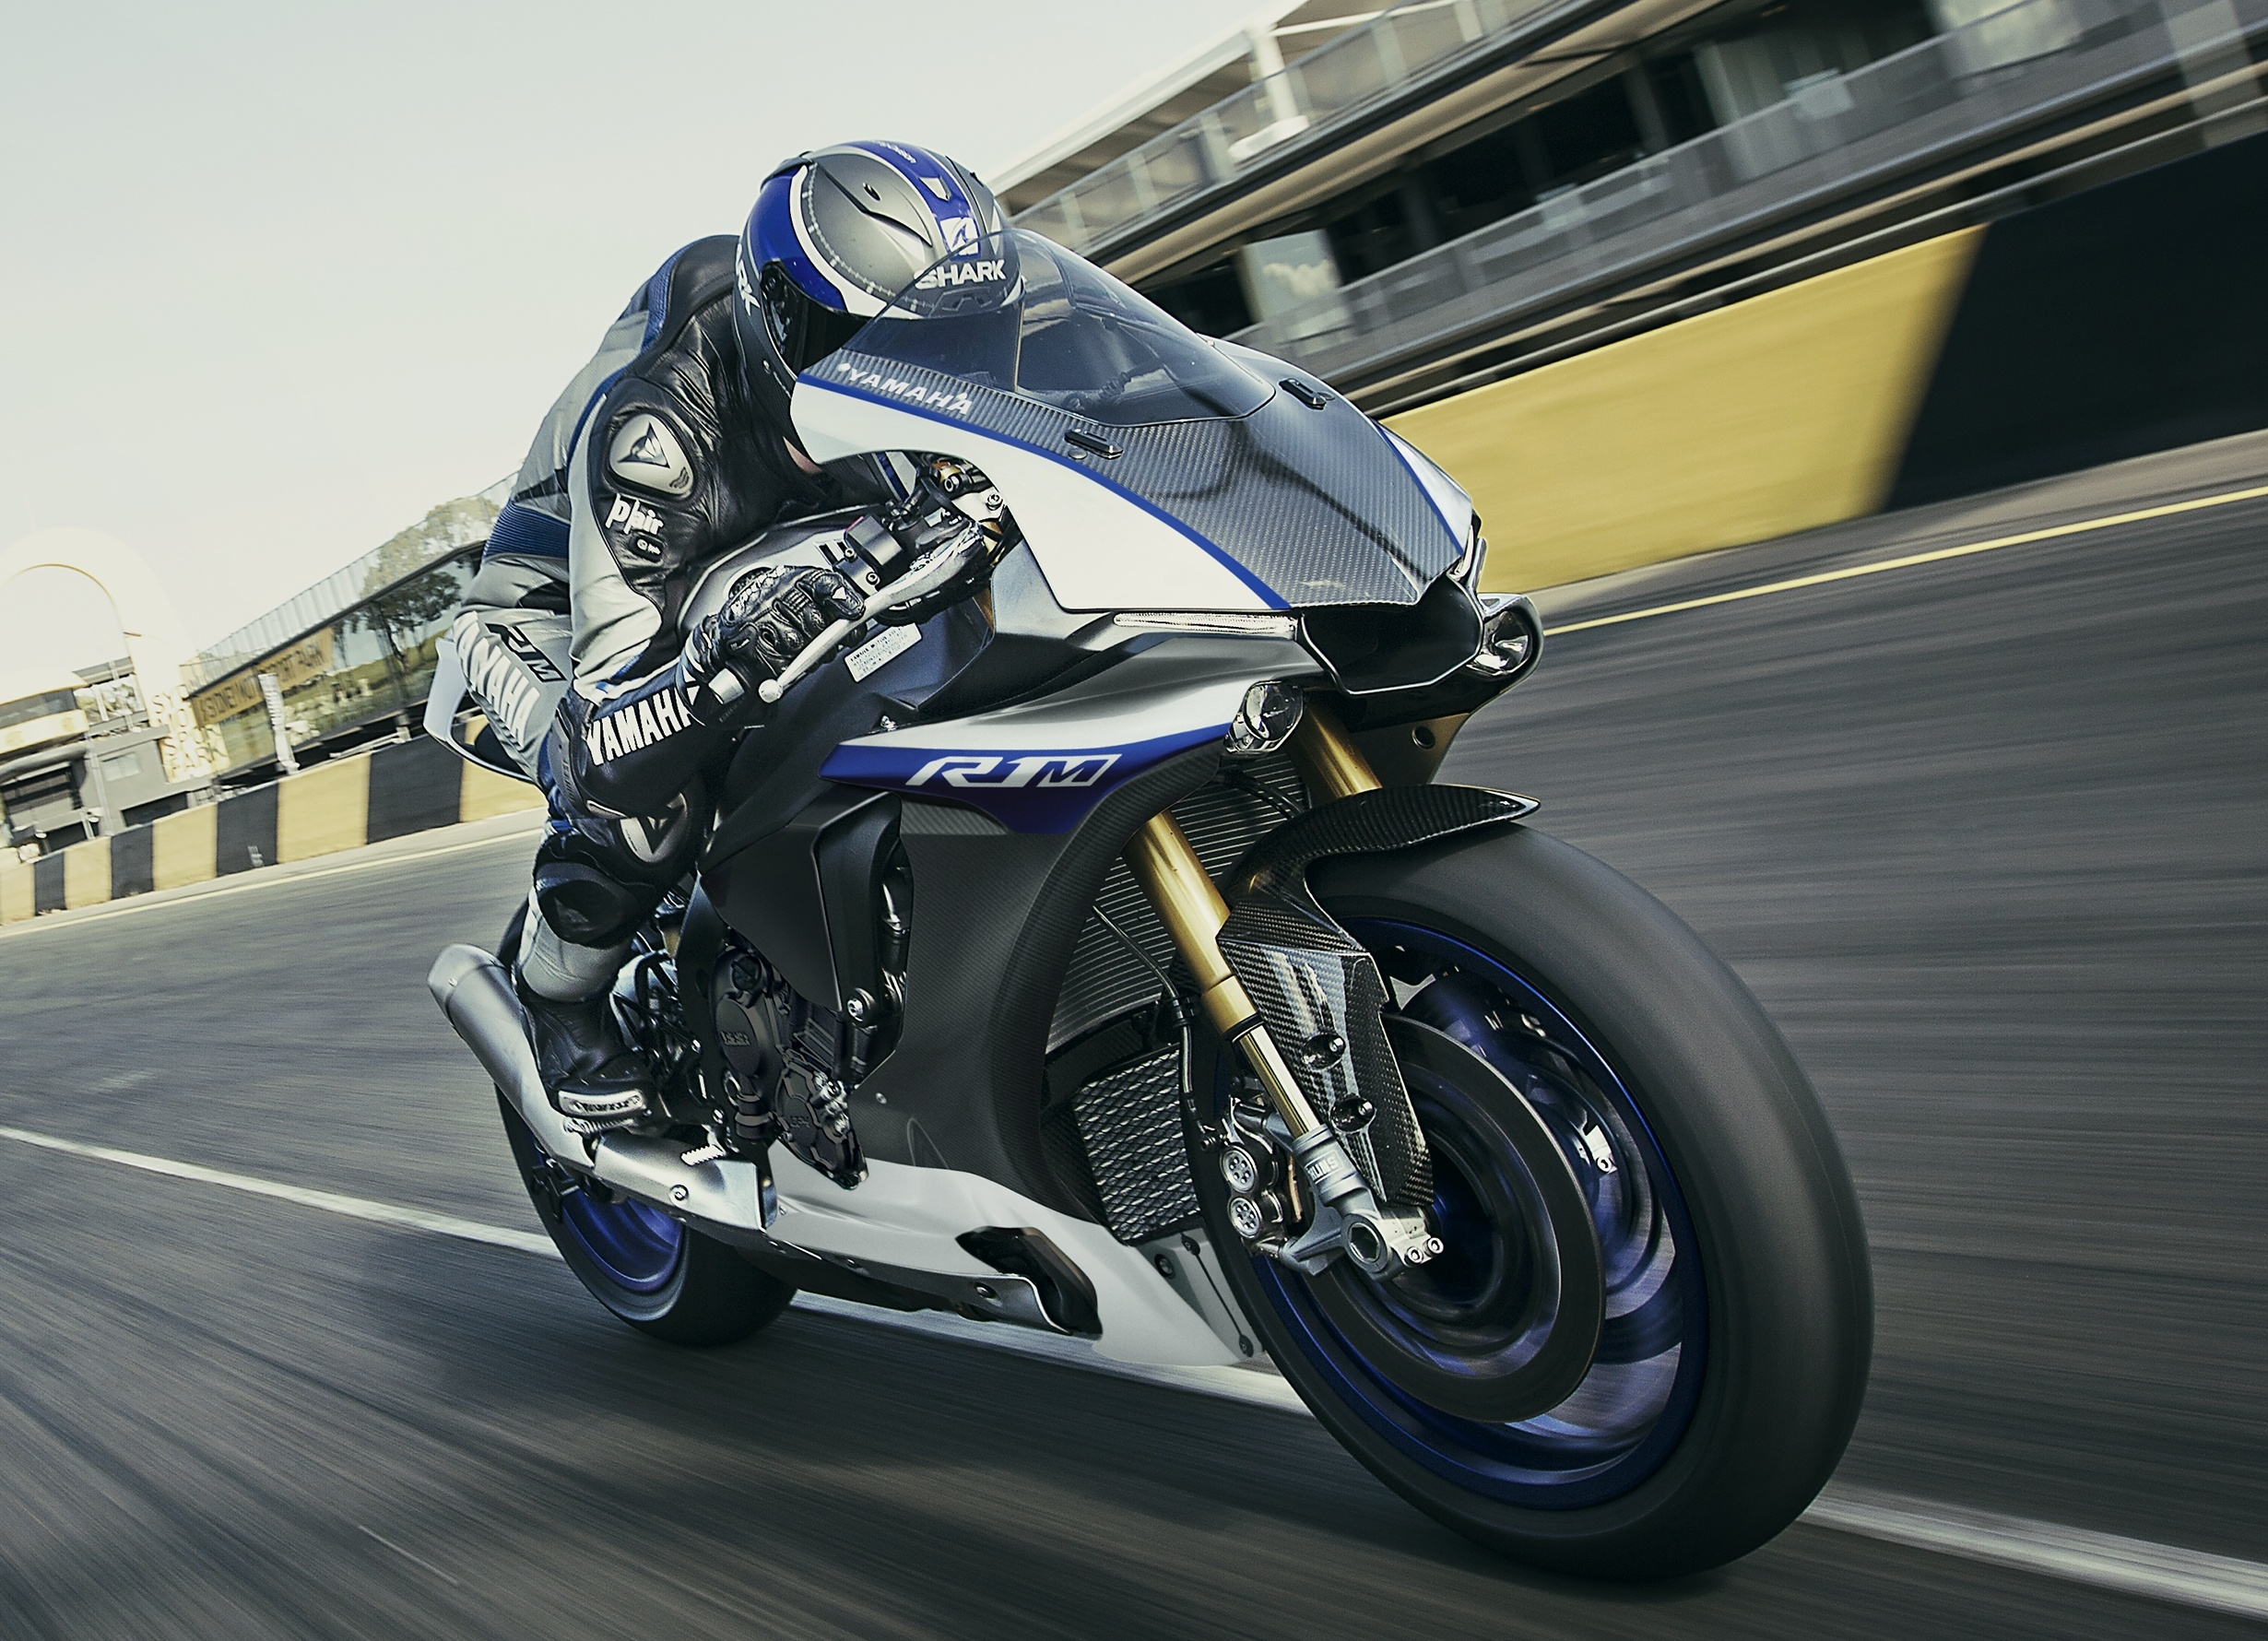 2017 Yamaha Yzf R1m Opens For Online Order In Oct